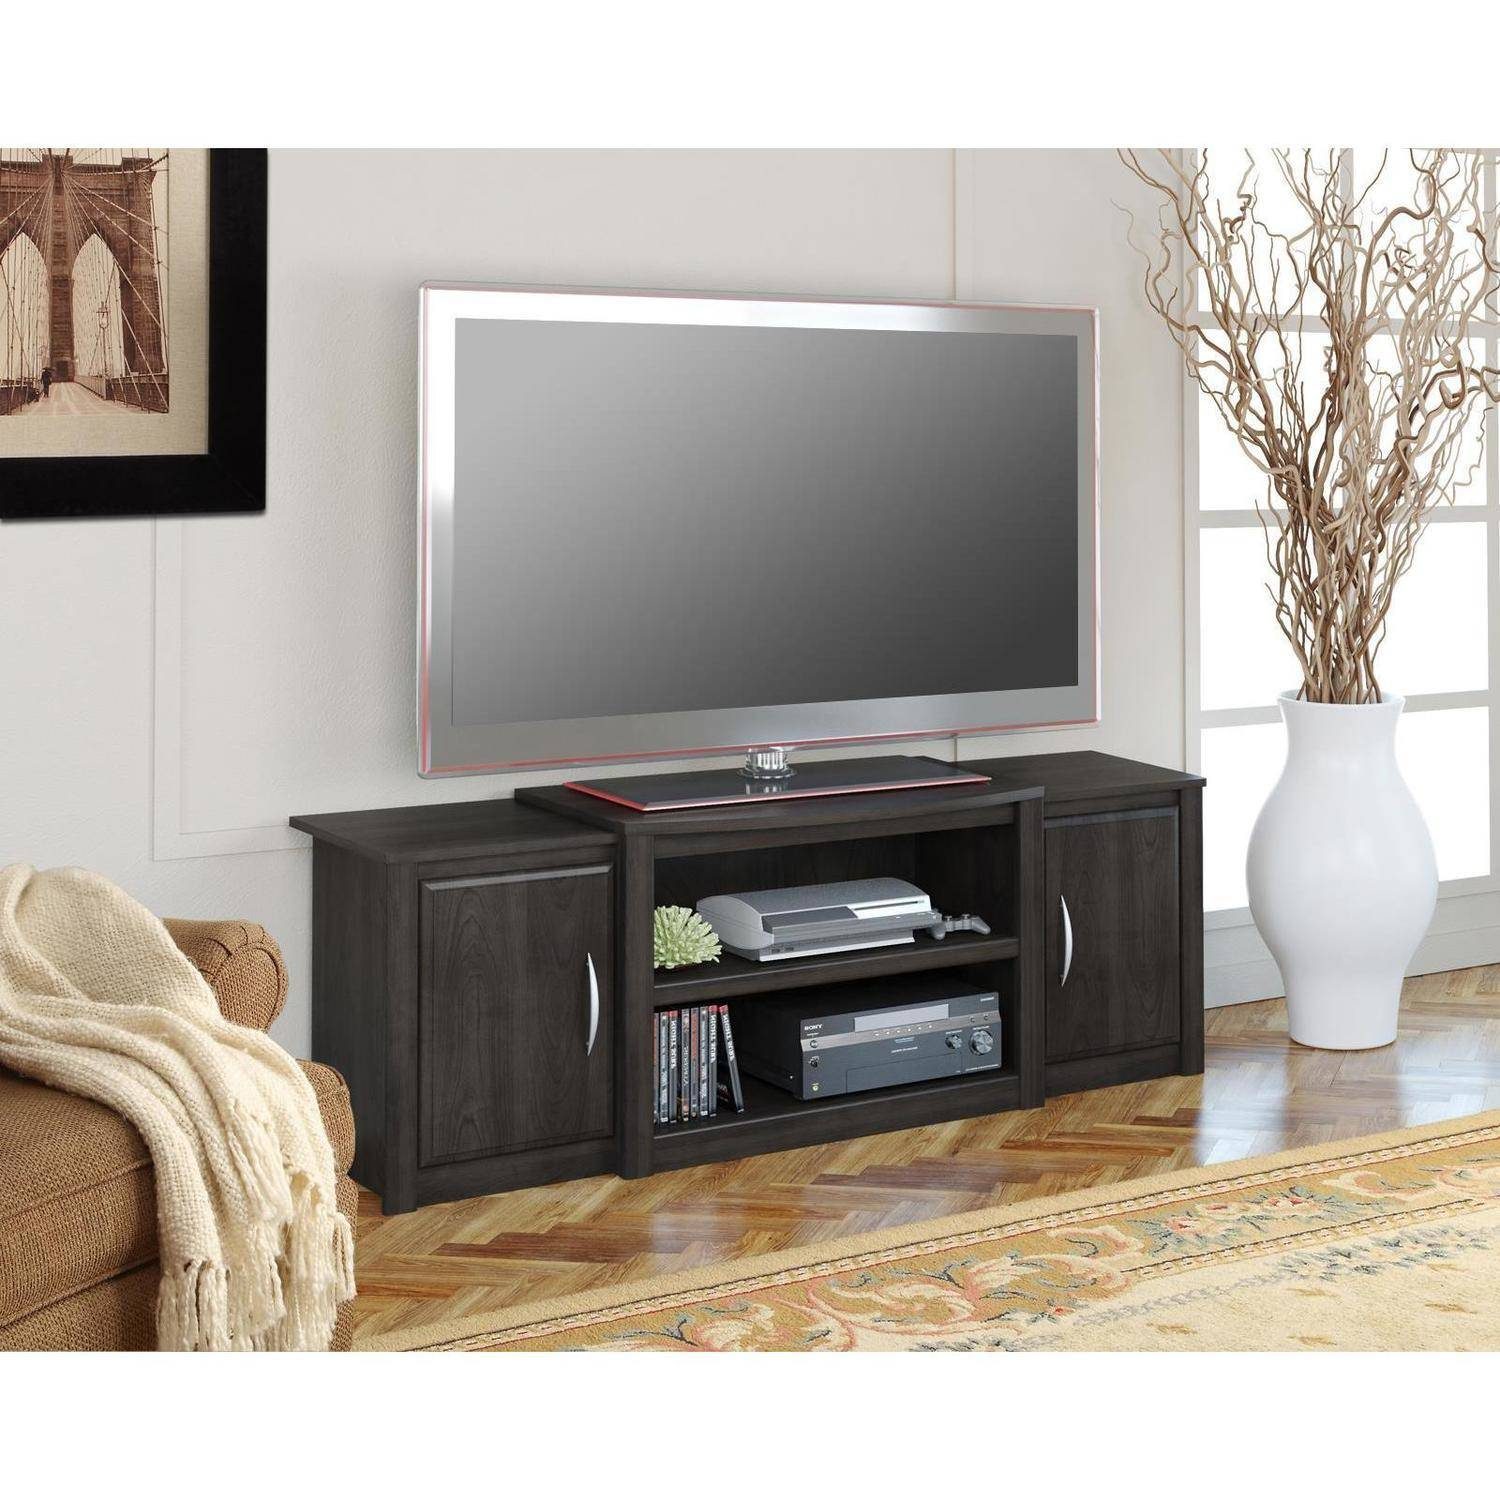 "Ameriwood Home Cohen TV Stand with Media Storage for TVs up to 60"" wide, Espresso"